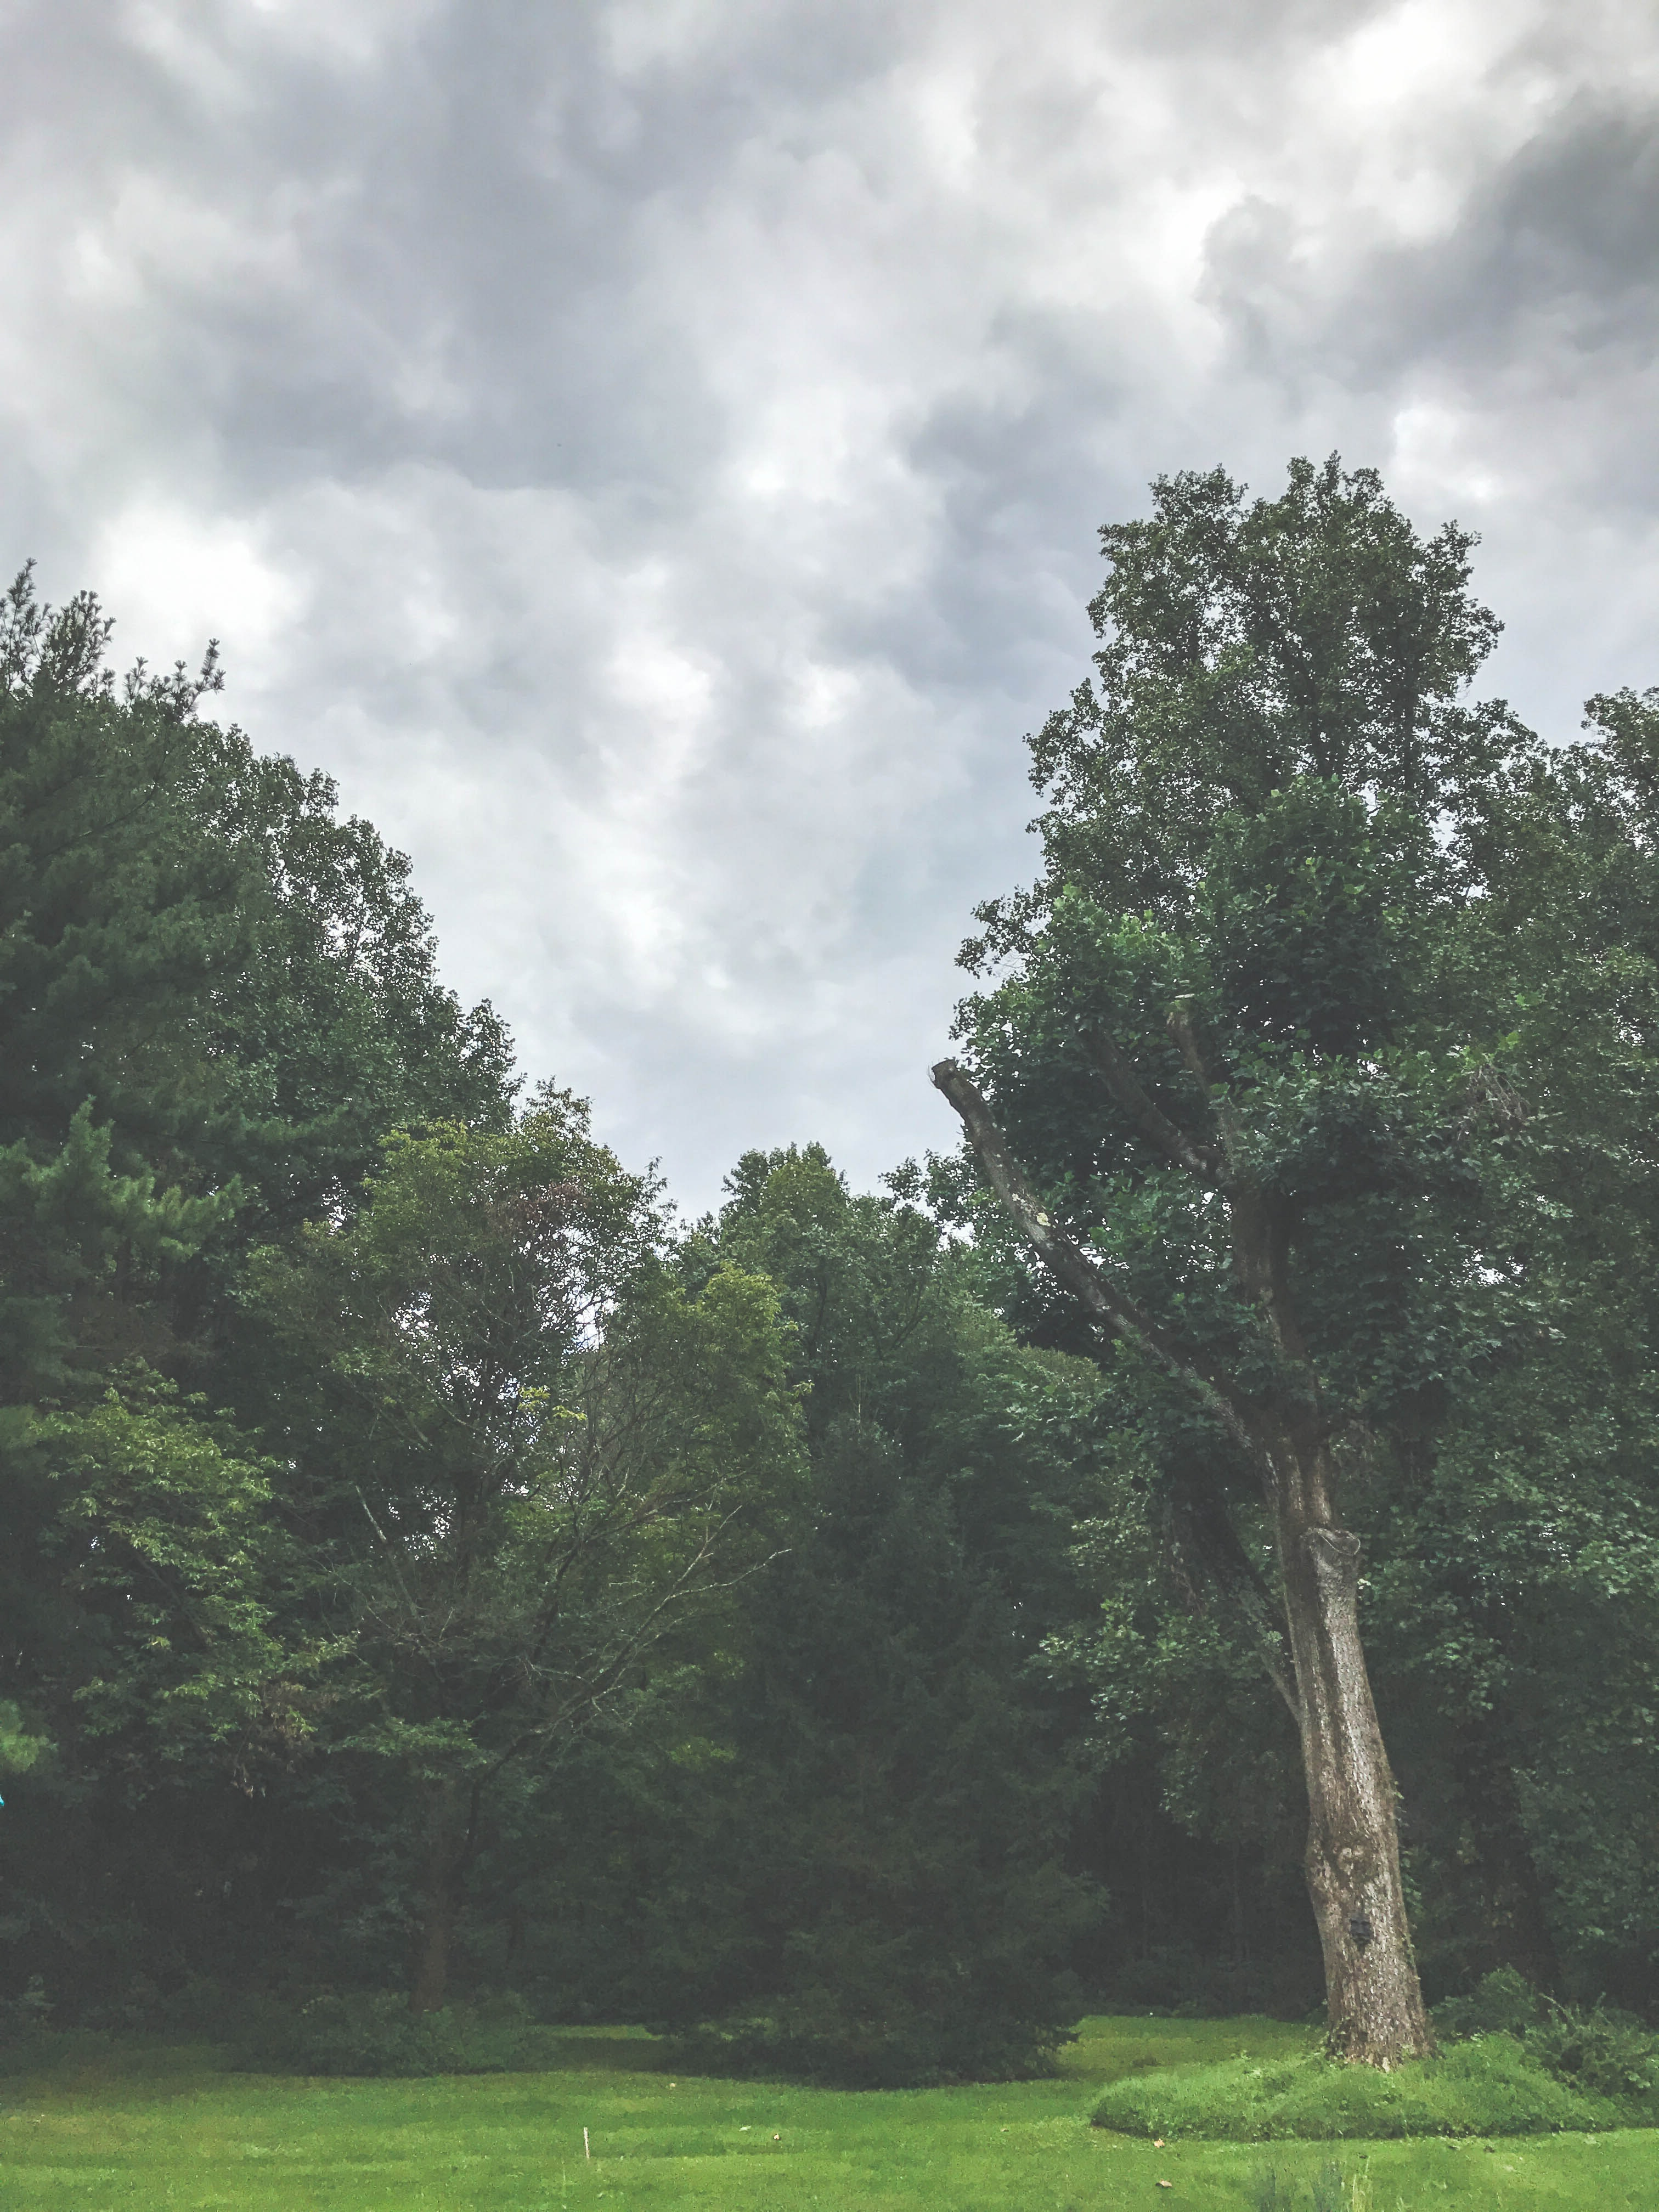 Green Trees Under the Cloudy Sky, Cloudy sky, Lush, Trees, Summer, HQ Photo